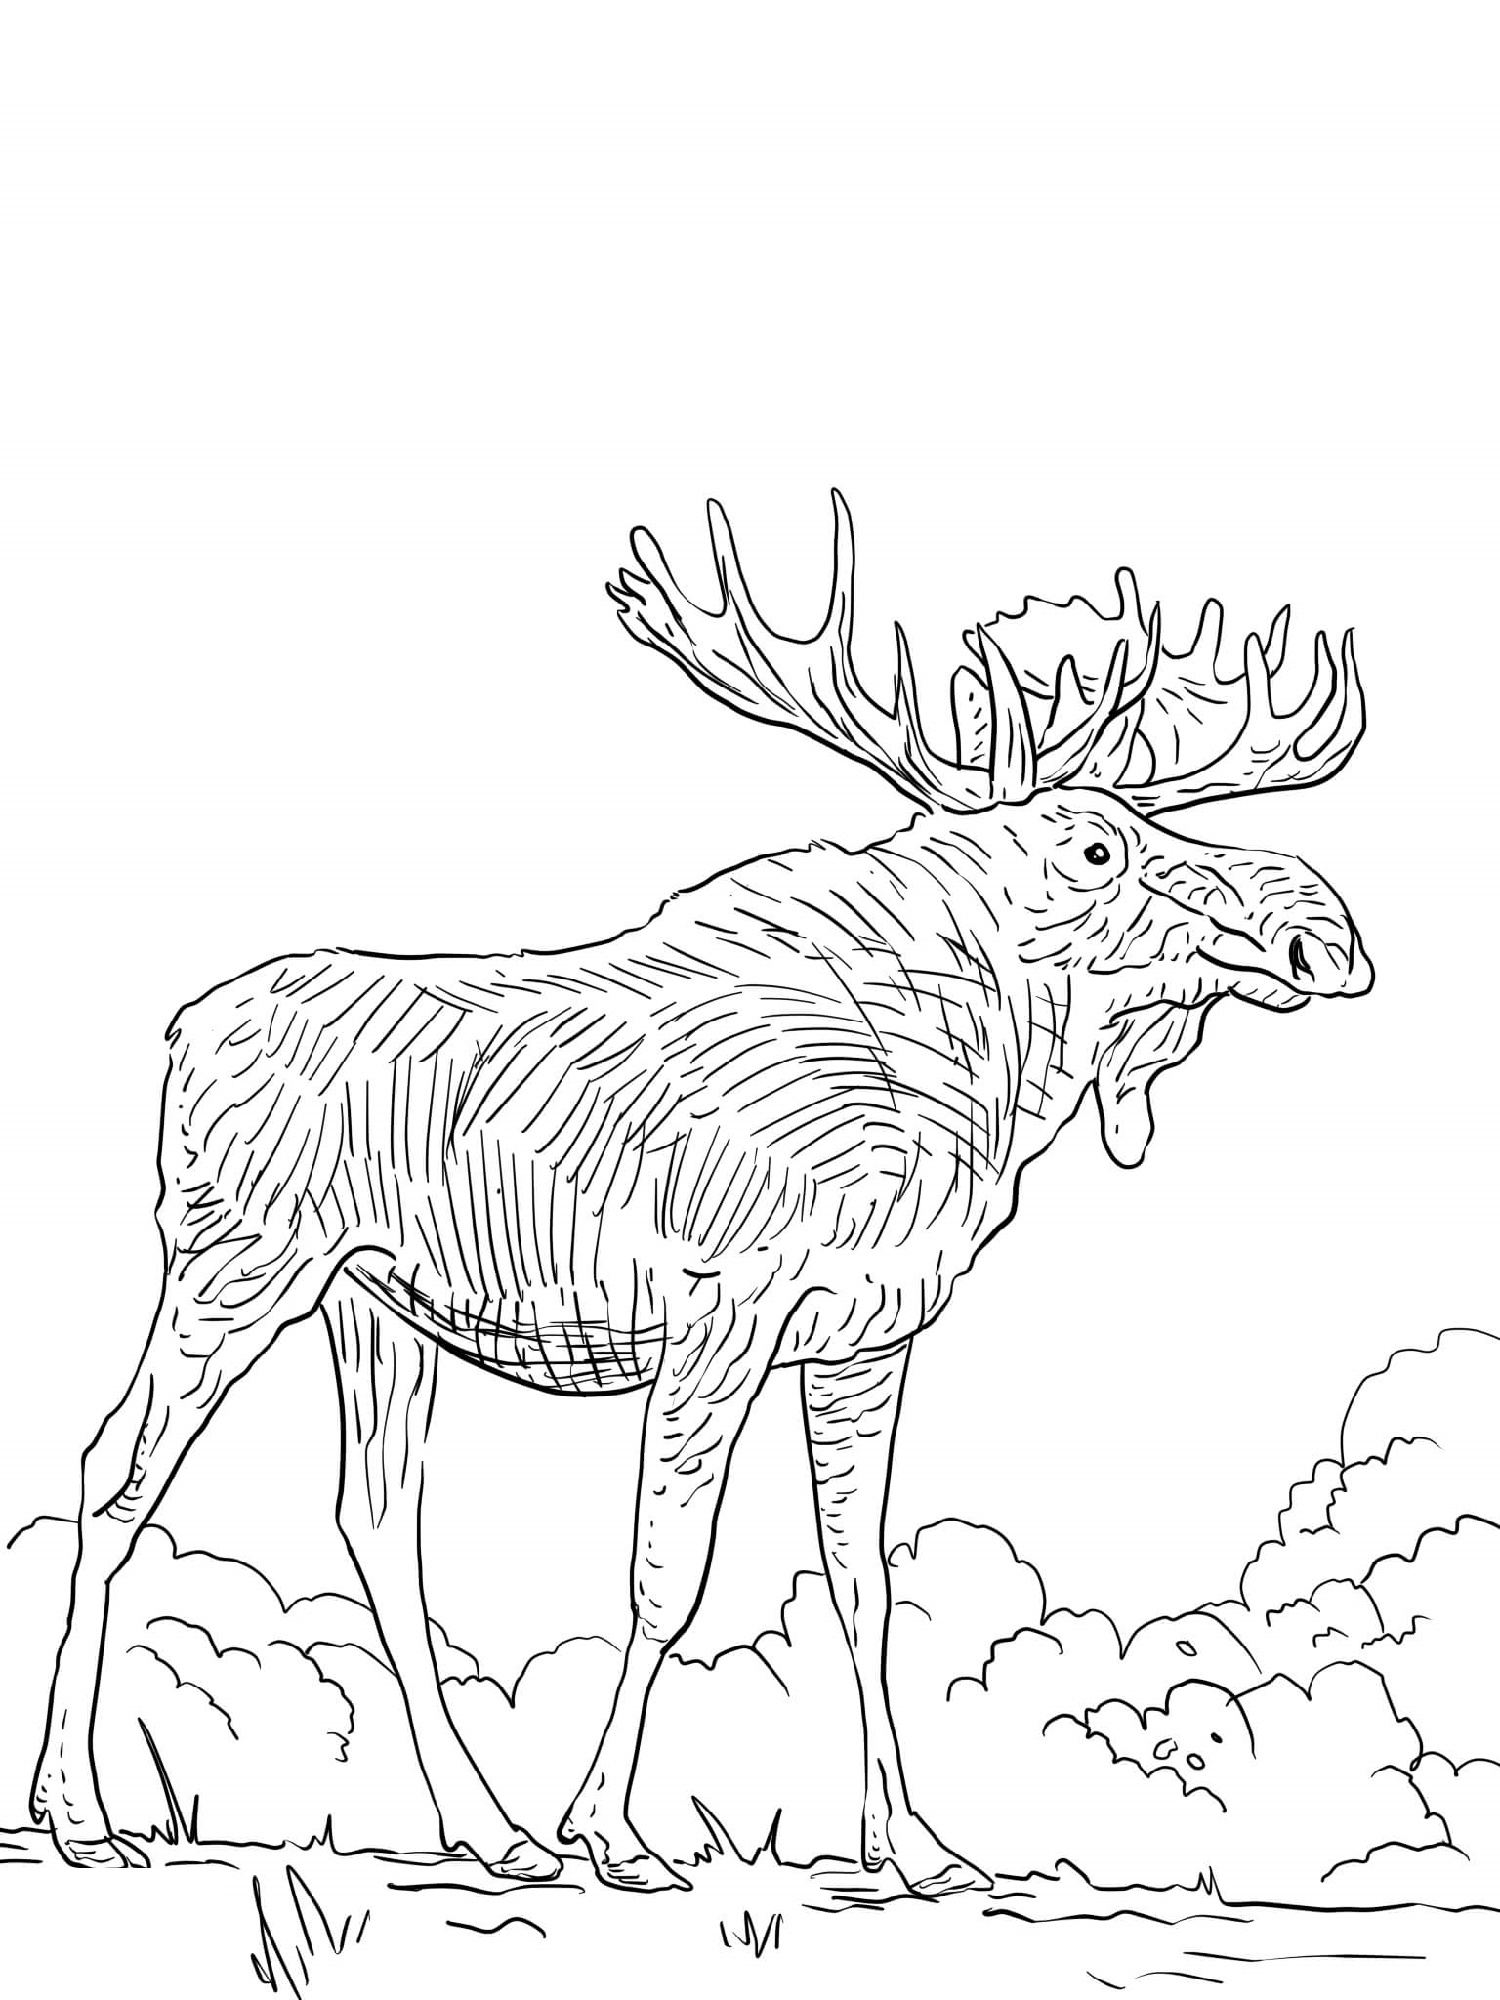 Elk Coloring Pages For Adults